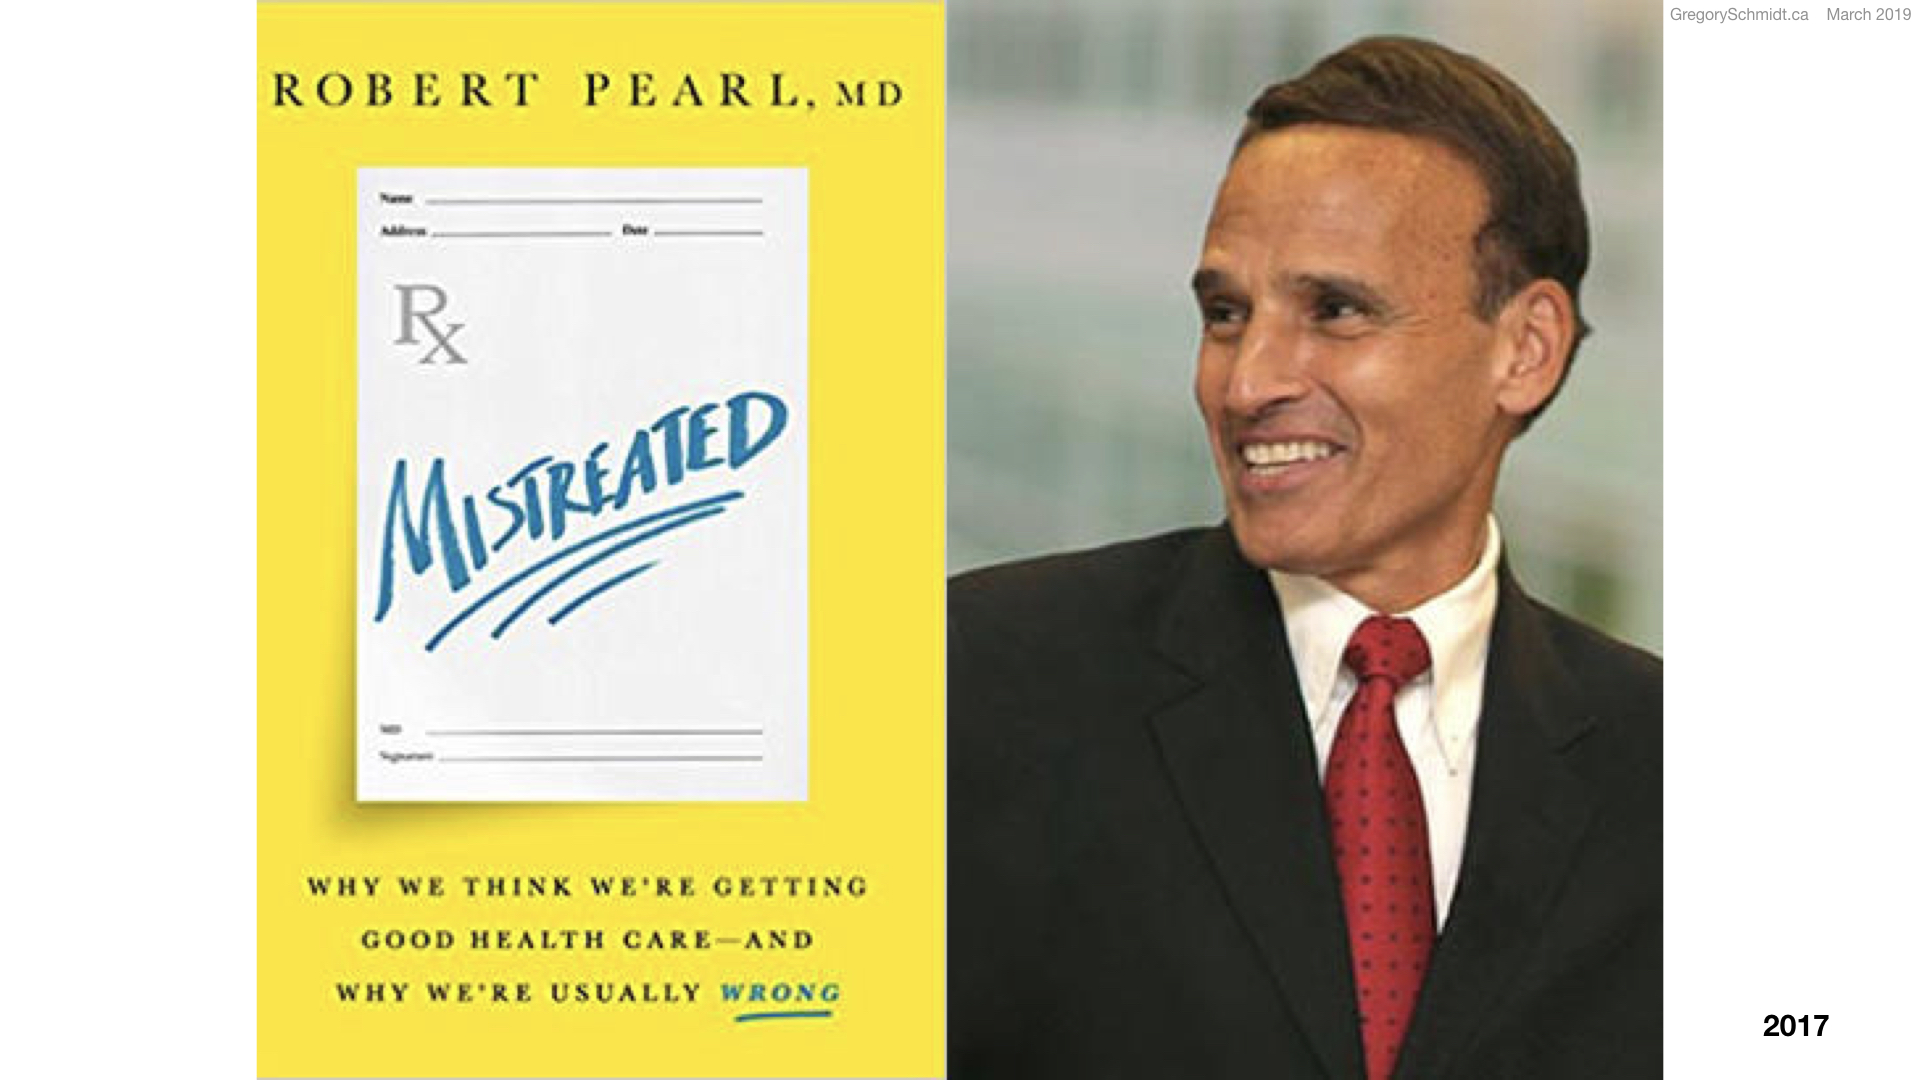 robert pearl mistreated book